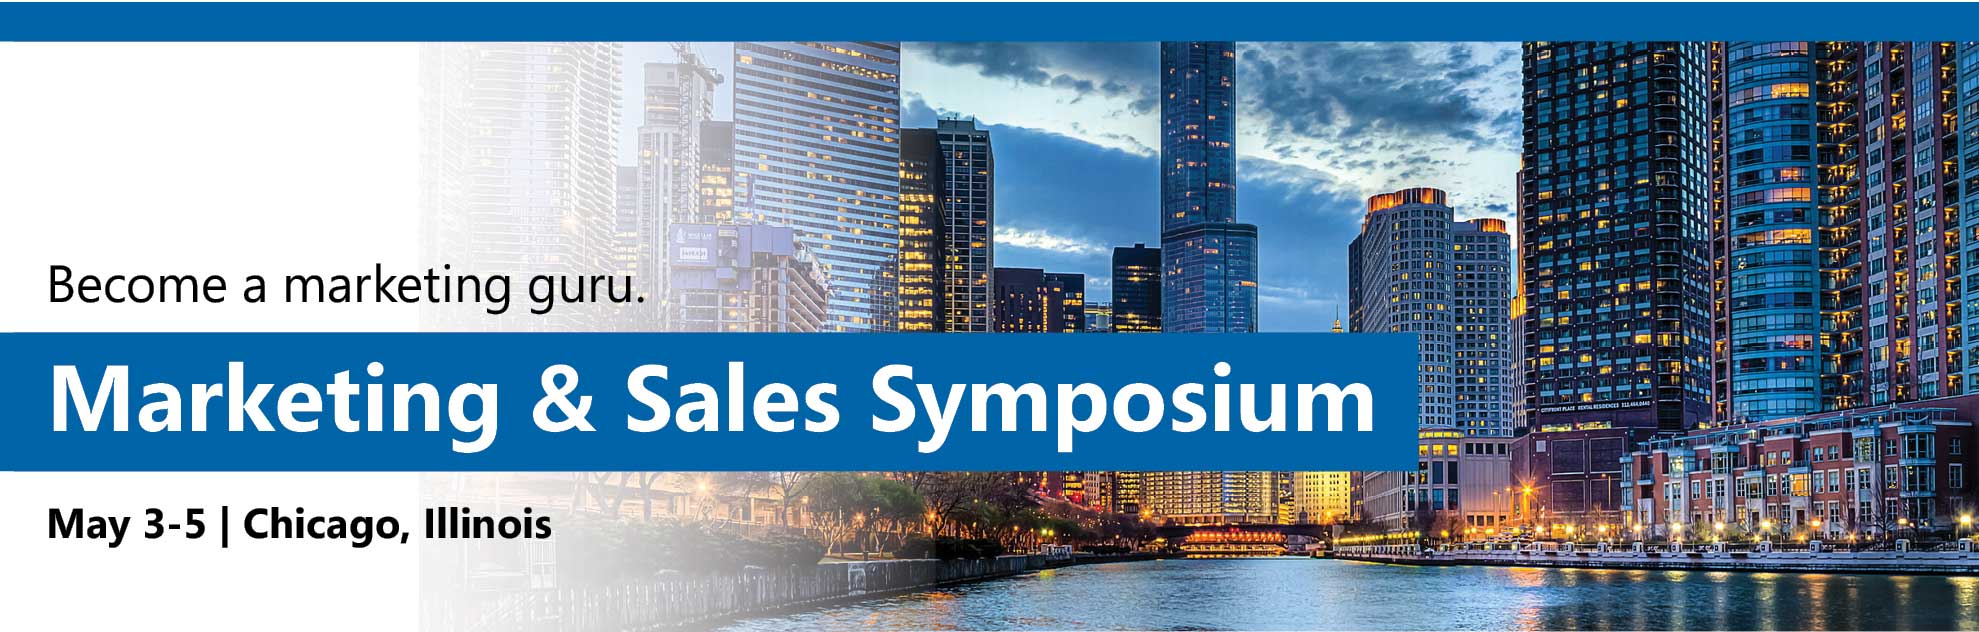 Marketing & Sales Symposium